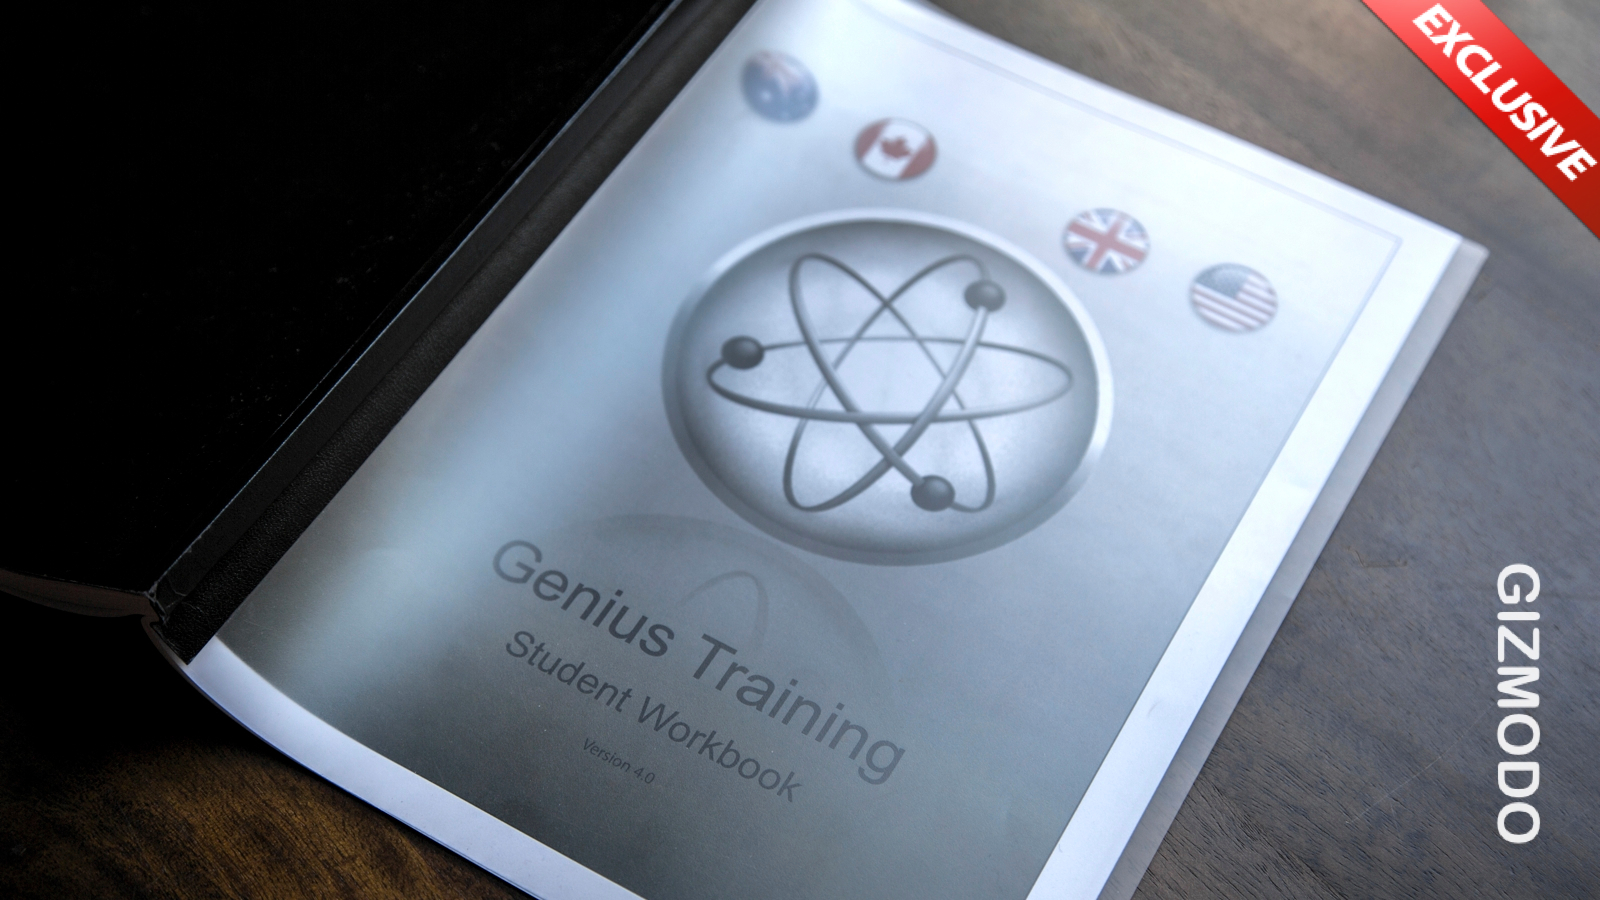 How To Be A Genius: This Is Apple's Secret Employee Training Manual